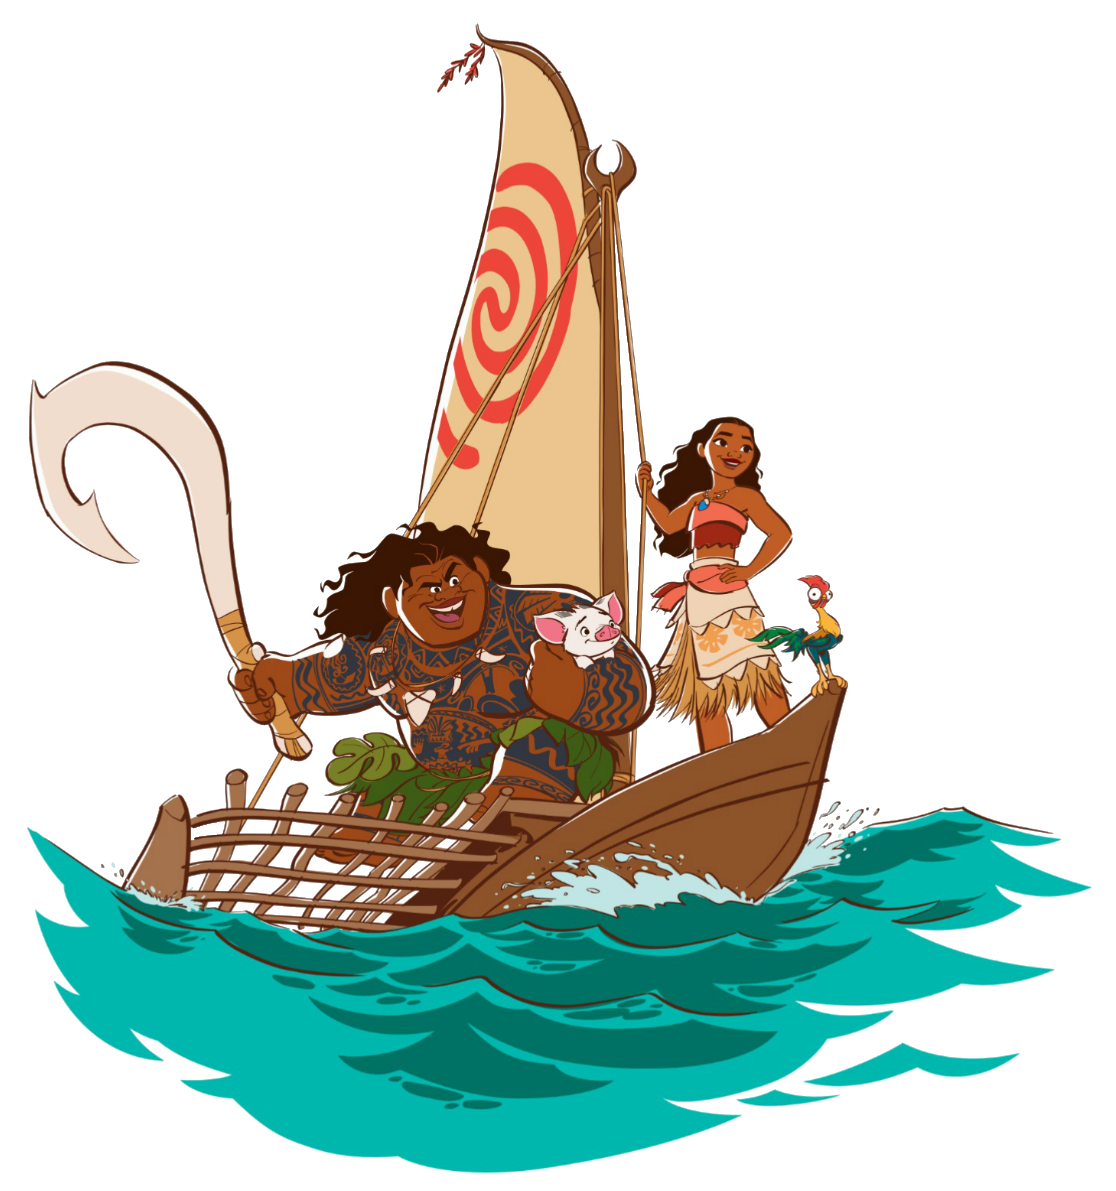 Boats clipart moana. Image s team png